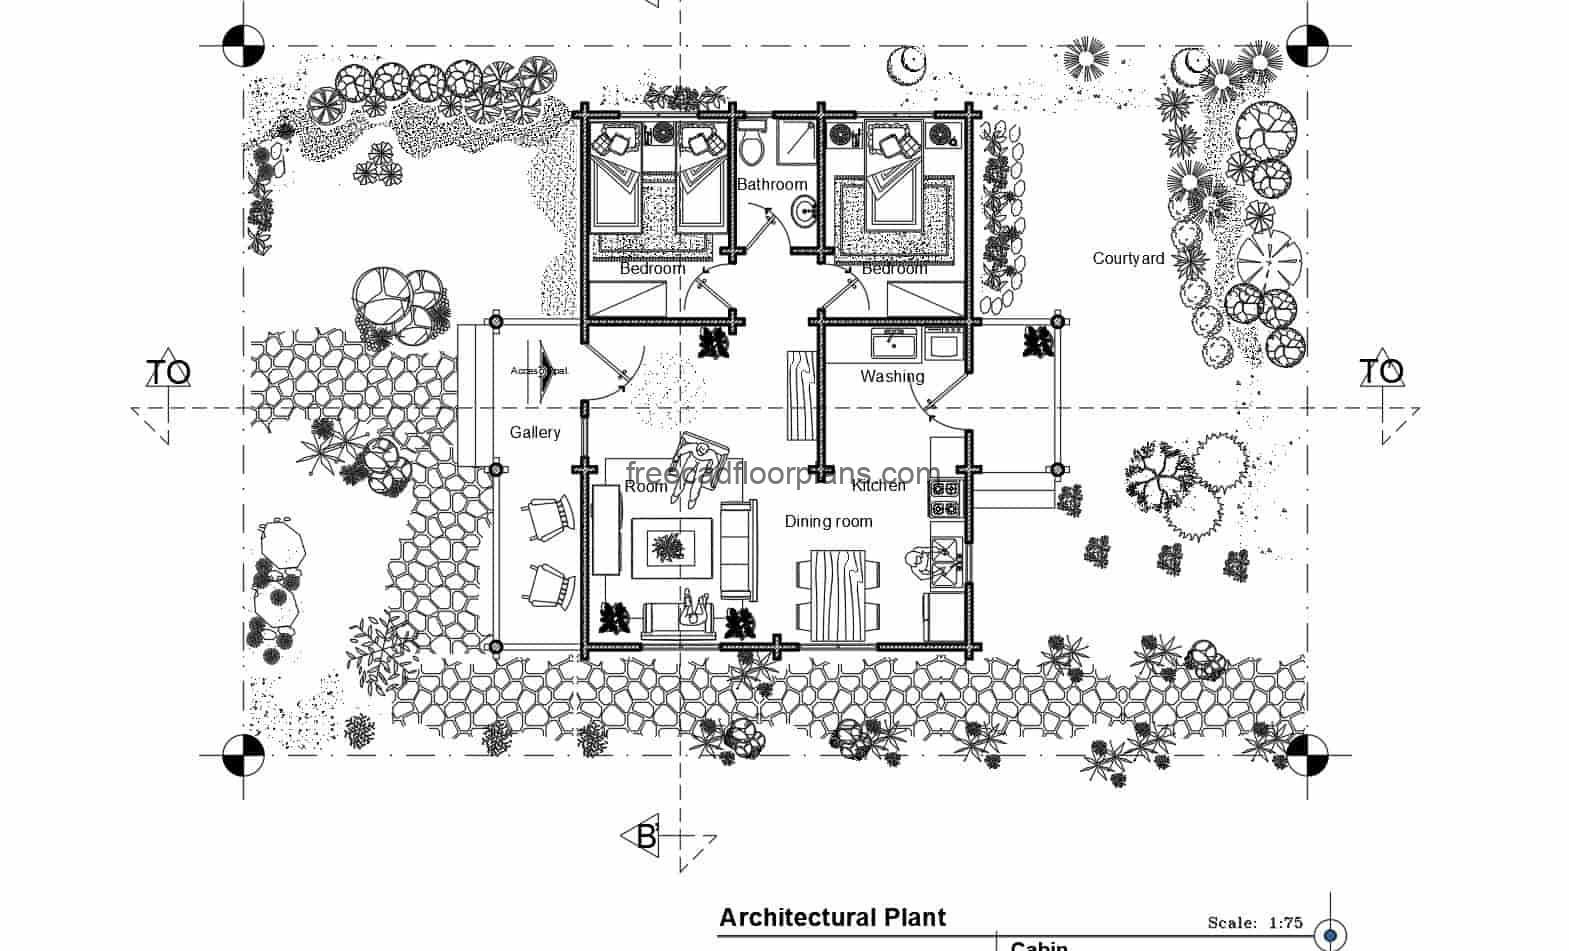 2D CAD project of architectural plans of farmhouse with two bedrooms, front terrace, living room, kitchen, dining room, laundry area and a bathroom, with large patio area. Blueprints in DWG for free download, interior autocad blocks.